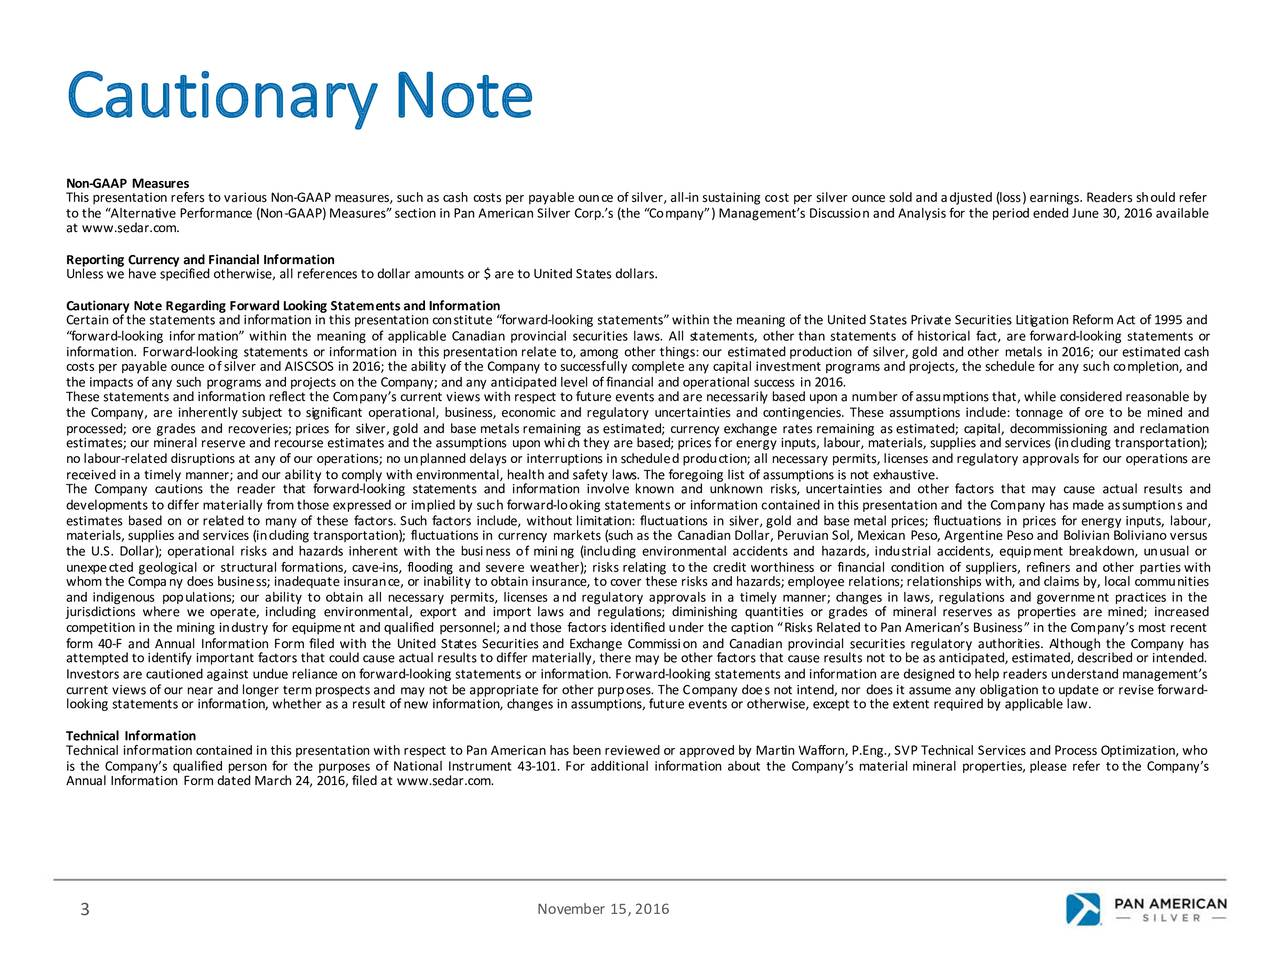 Non-GAAP Measures This presentationrefers to various Non-GAAP measures,suchas cash costsper payableounceofsilver,all-in sustainingcostper silver ouncesoldand (loss)earnings. Readersshouldrefer to the AlternativePerformance(Non-GAAP)Measures sectionin PanAmerican Silver Corp.s (theCompany)Managements Discussion and Analysis forthe periodended June 30, 2016 available at www.sedar.com. Reporting Currencyand Financial Information Unless we have specified otherwise, all references to dollar amounts or $ are to United States dollars. CautionaryNoteRegarding Forward LookingStatements and Information Certainofthe statementsand information in this presentationconstituteforward-looking statementswithin the meaningofthe UnitedStates PrivateSecurities LitigationReformAct of1995 and forward-looking information within the meaningof applicable Canadianprovincial securities laws. All statementso,therthan statements of historical fact, are forward-looking statements or information. Forward-looking statements or information in this presentationrelate to, among otherthings: our estimated productionof silver,gold and other metalsin 2016; our estimated cash costsper payableounceof silver and AISCSOS in 2016; the ability ofthe Companyto successfullycompleteany capitalinvestment programsand projects,the scheduleforany suchcompletion,and These statementsand information reflect the Companys currentviews with respect to futureevents and are necessarilybasedupona numberofassumptions that, while consideredreasonable by the Company,are inherently subject to significant operational,business, economic and regulatory uncertaintiesand contingencie.sThese assumptions include: tonnage of ore to be minedand estimates; our mineralreserve and recourse estimates and the assumptions uponwhich they are based;pricesfor energy inputs, labour, materials,suppliesand services(includingtransportation) ; no labour-related disruptionsat any ofour operations; no unplanneddelaysor interruptions in scheduledproductio